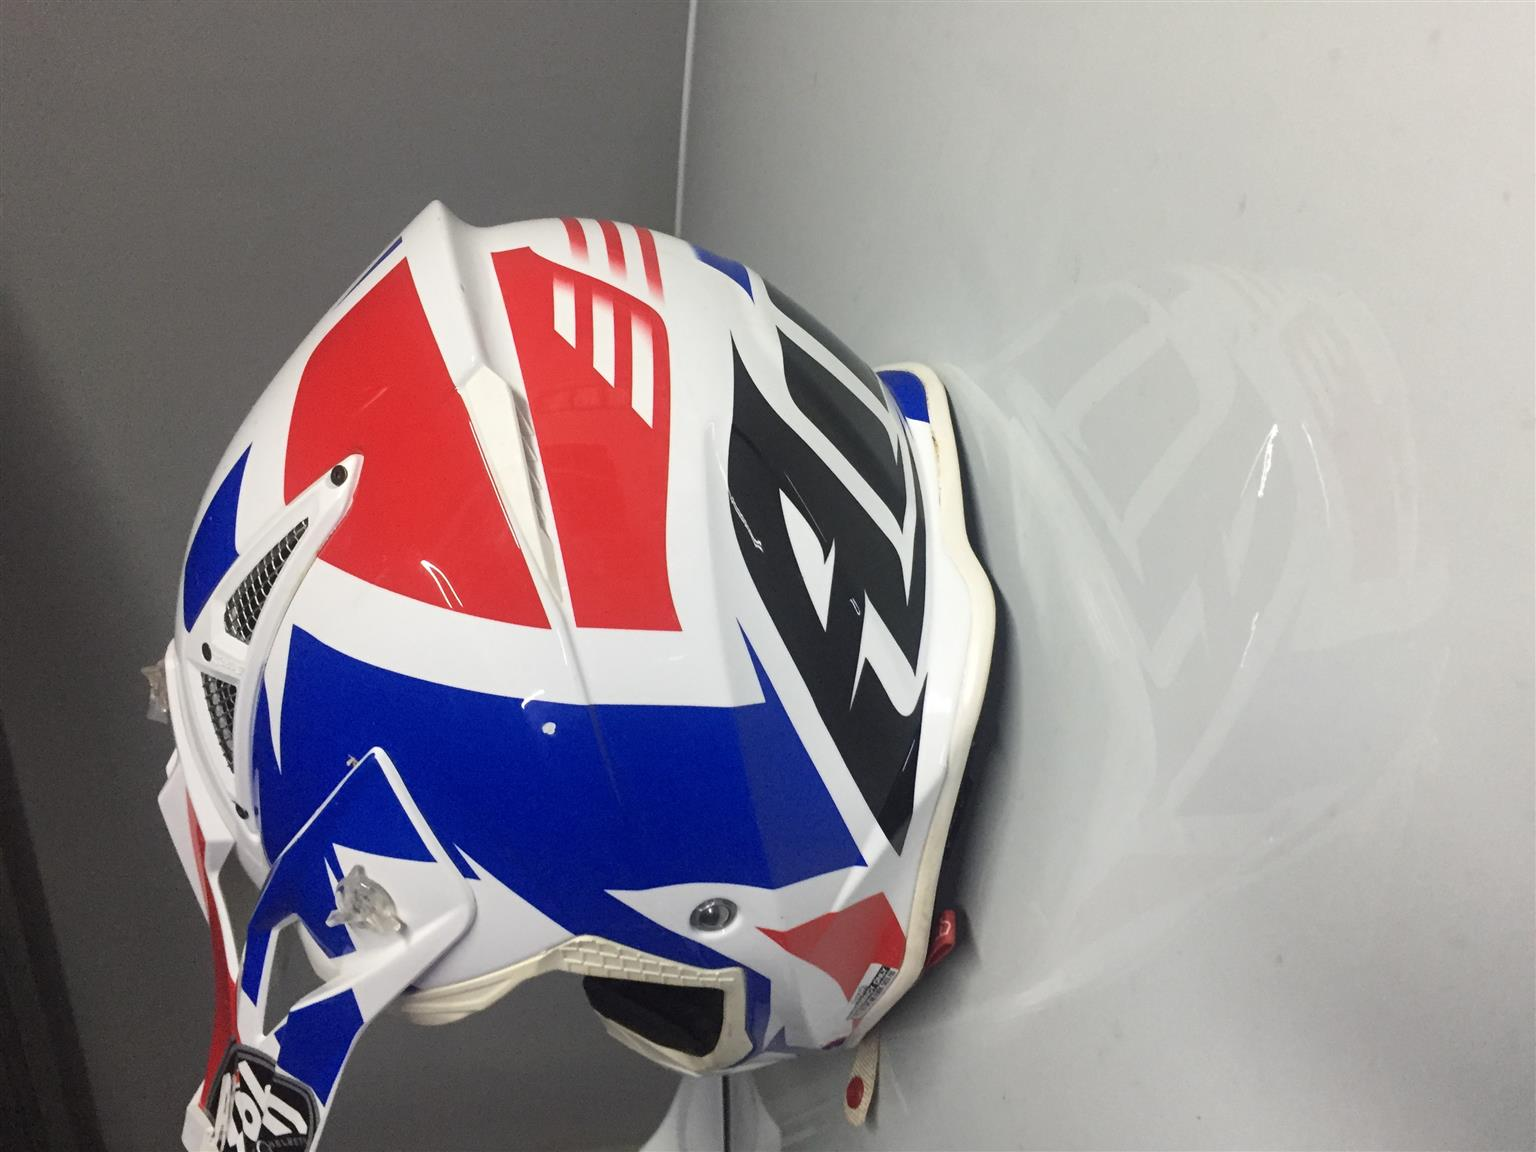 Airoh Helmet For Sale. Like New, hardly used.